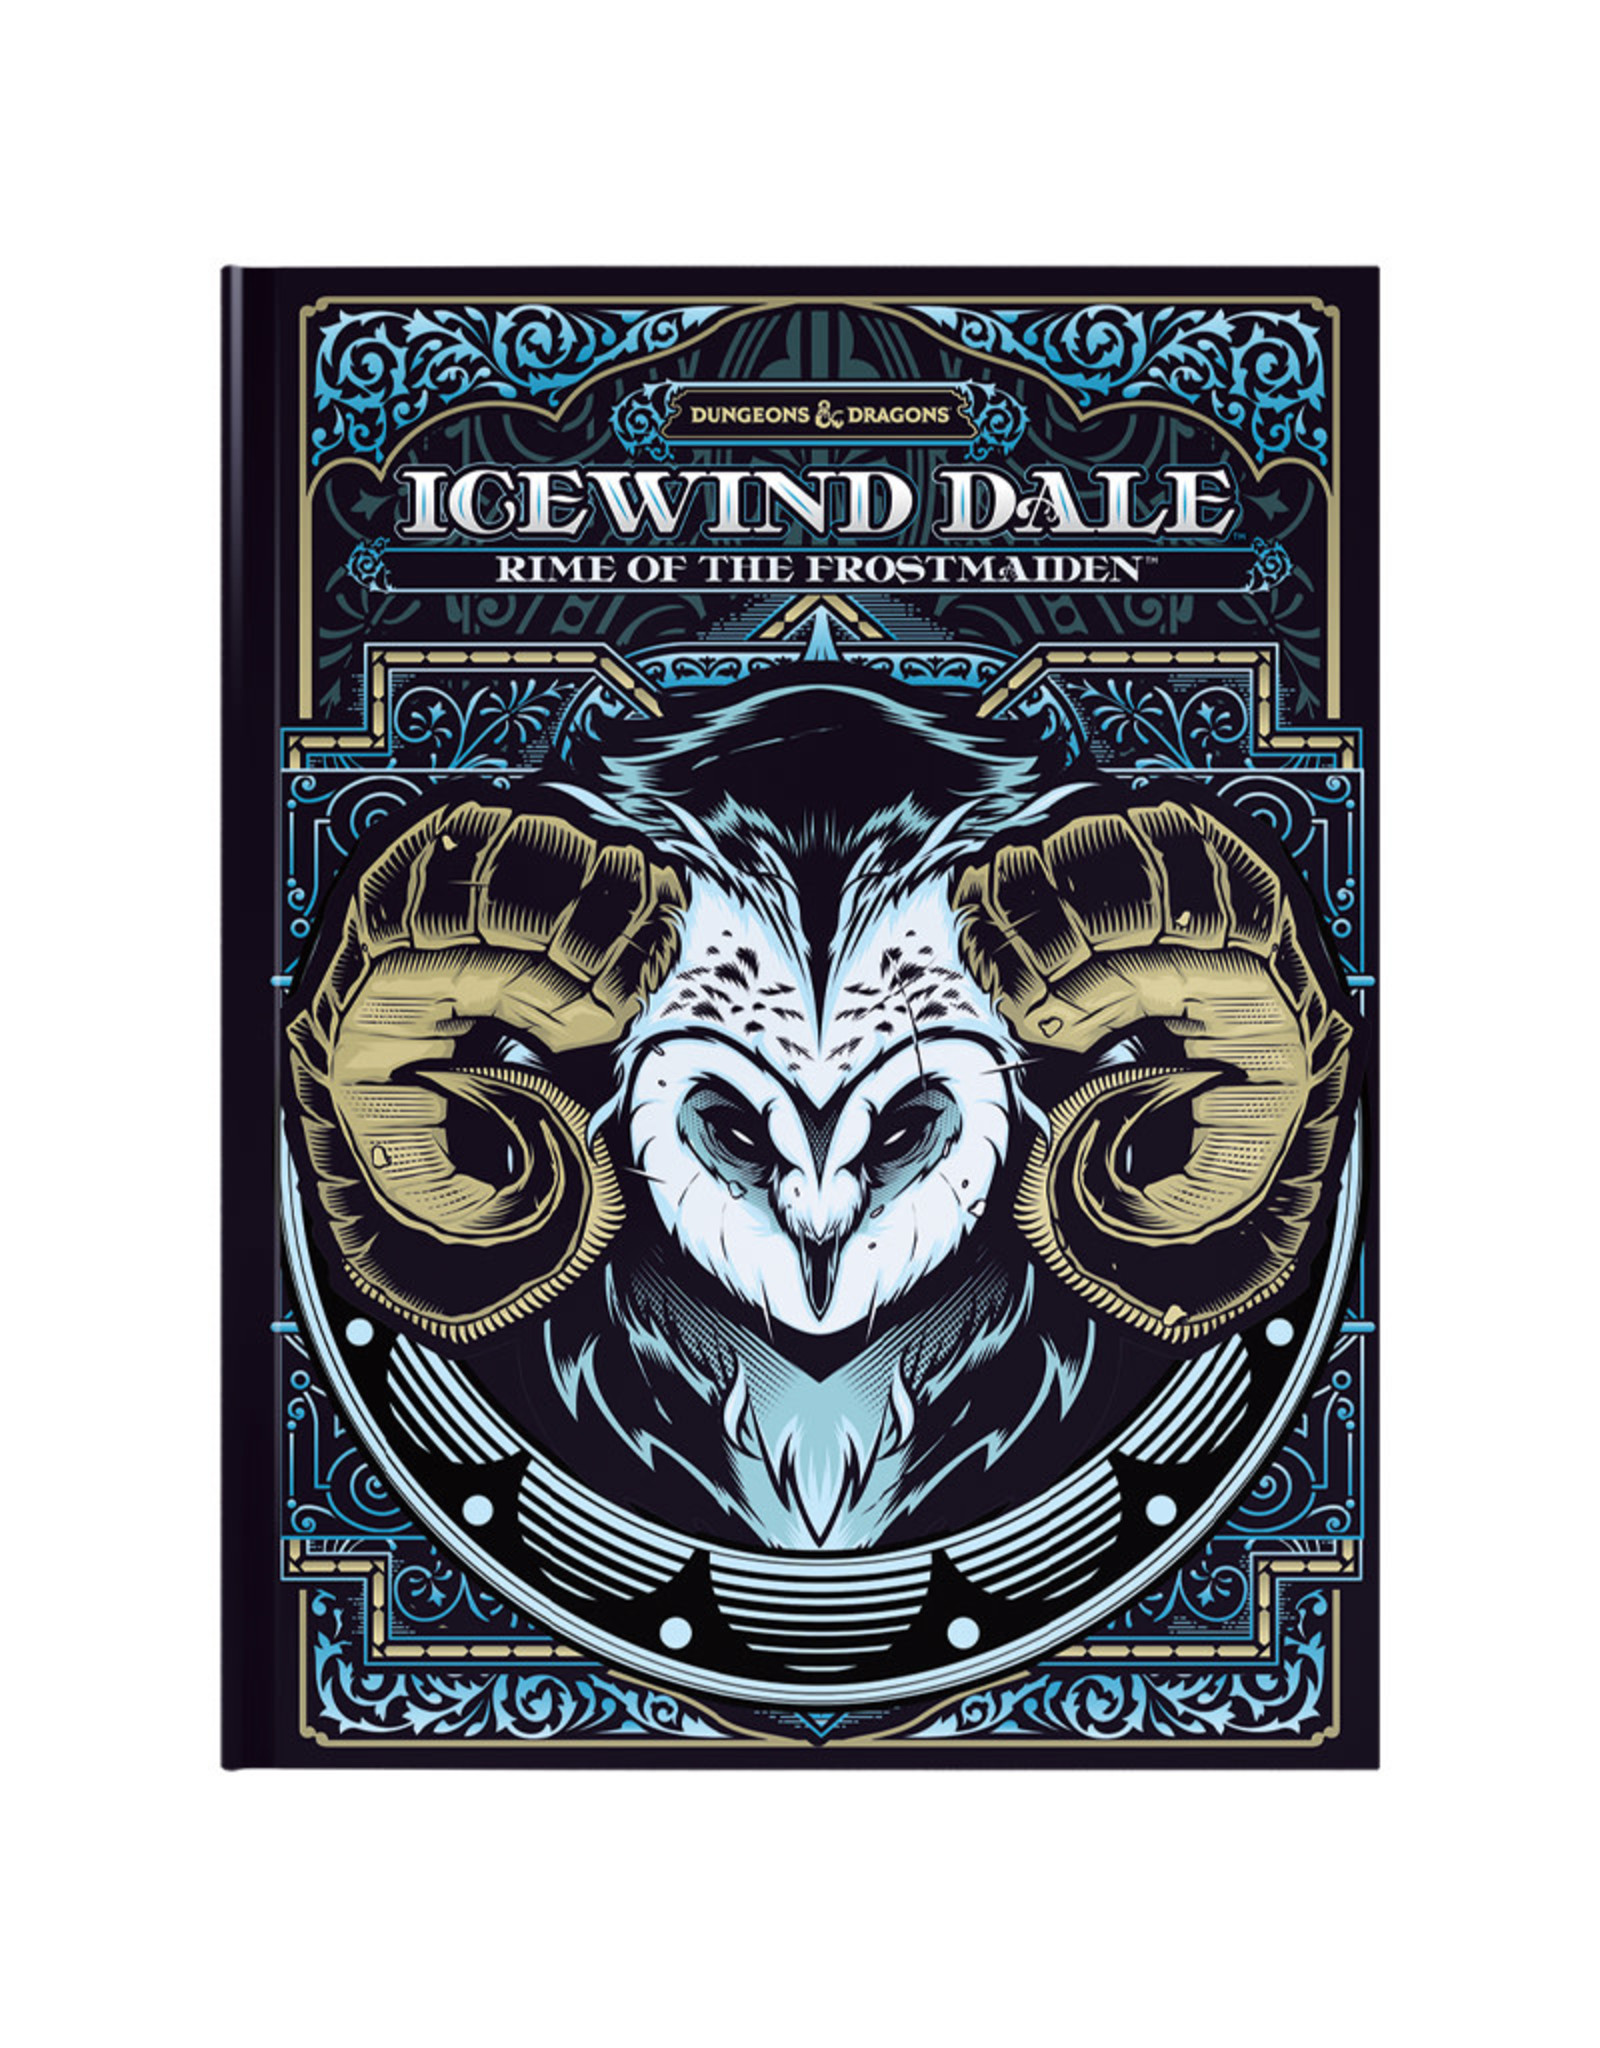 Wizards of the Coast D&D RPG: Icewind Dale Rime of the Frostmaiden - Alternate Art Cover